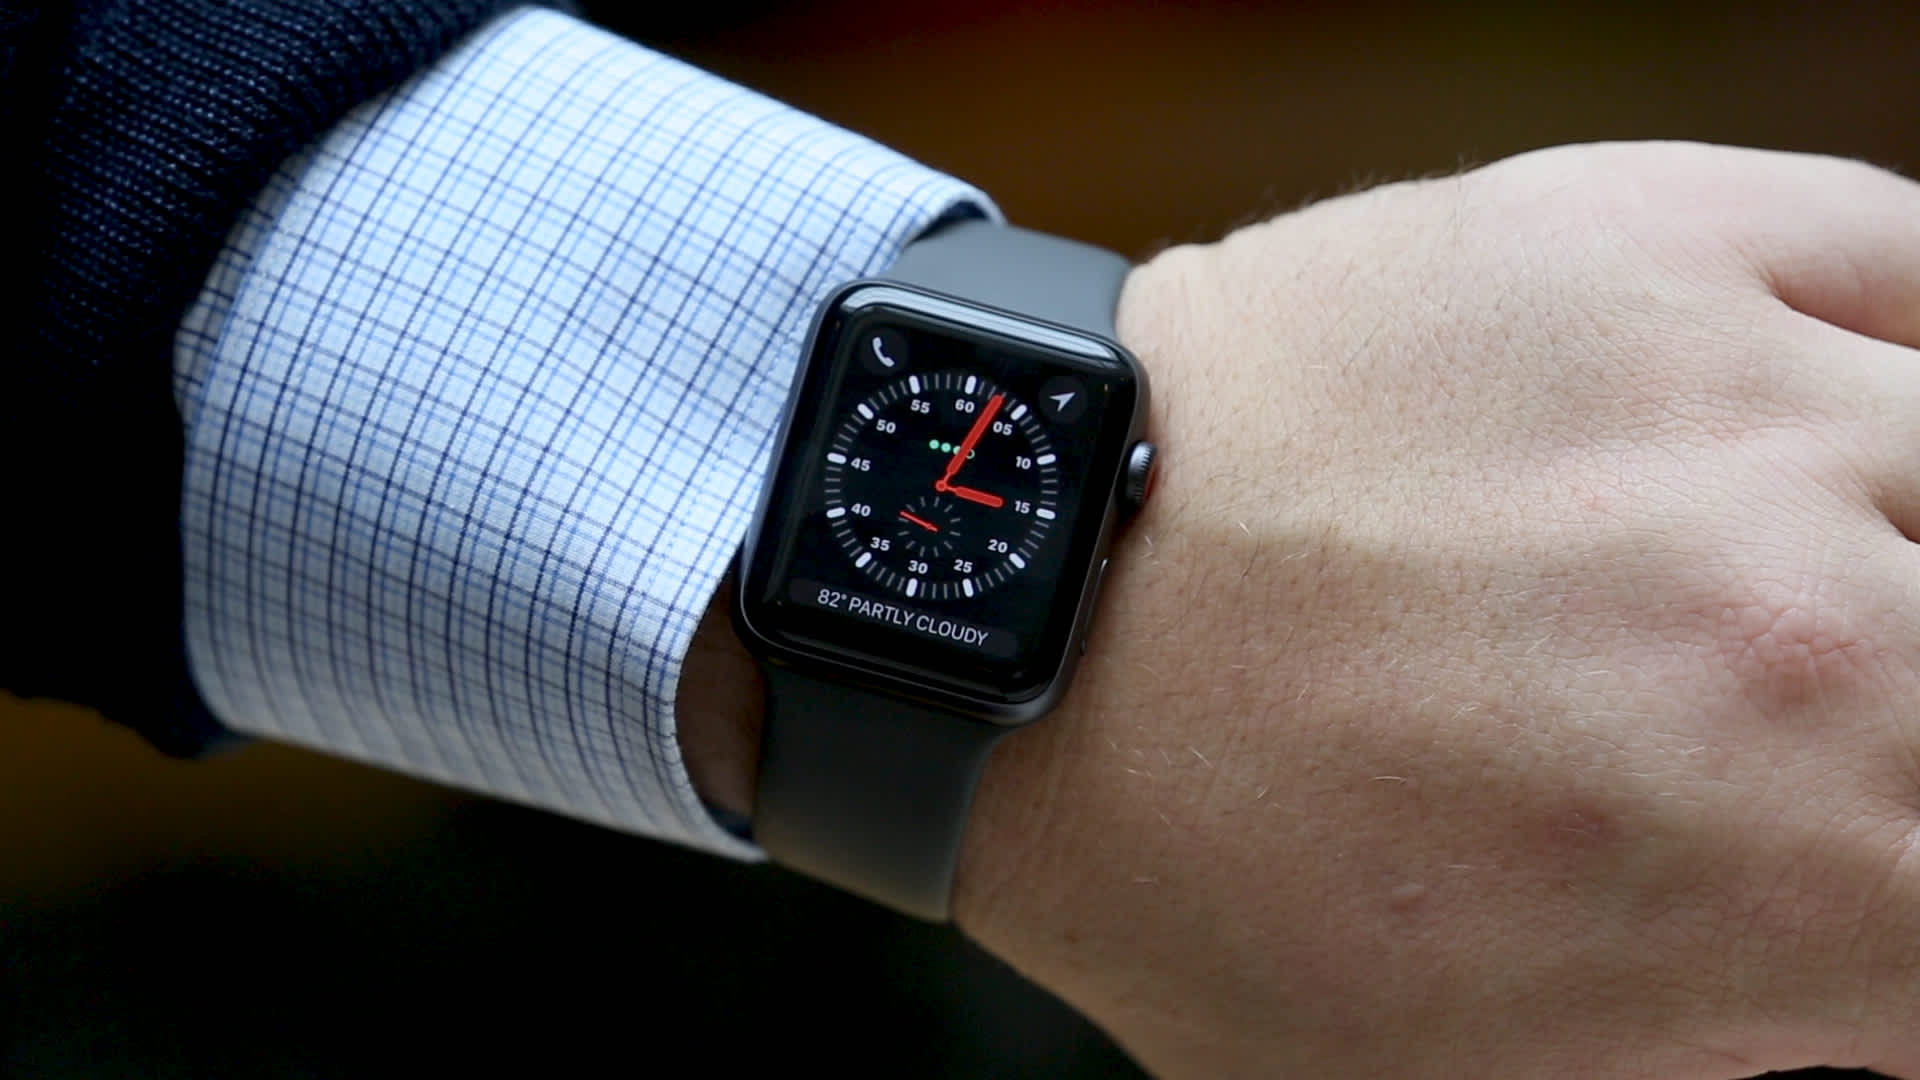 Apple Watch will soon let doctors remotely monitor patients as they age — here's what experts think